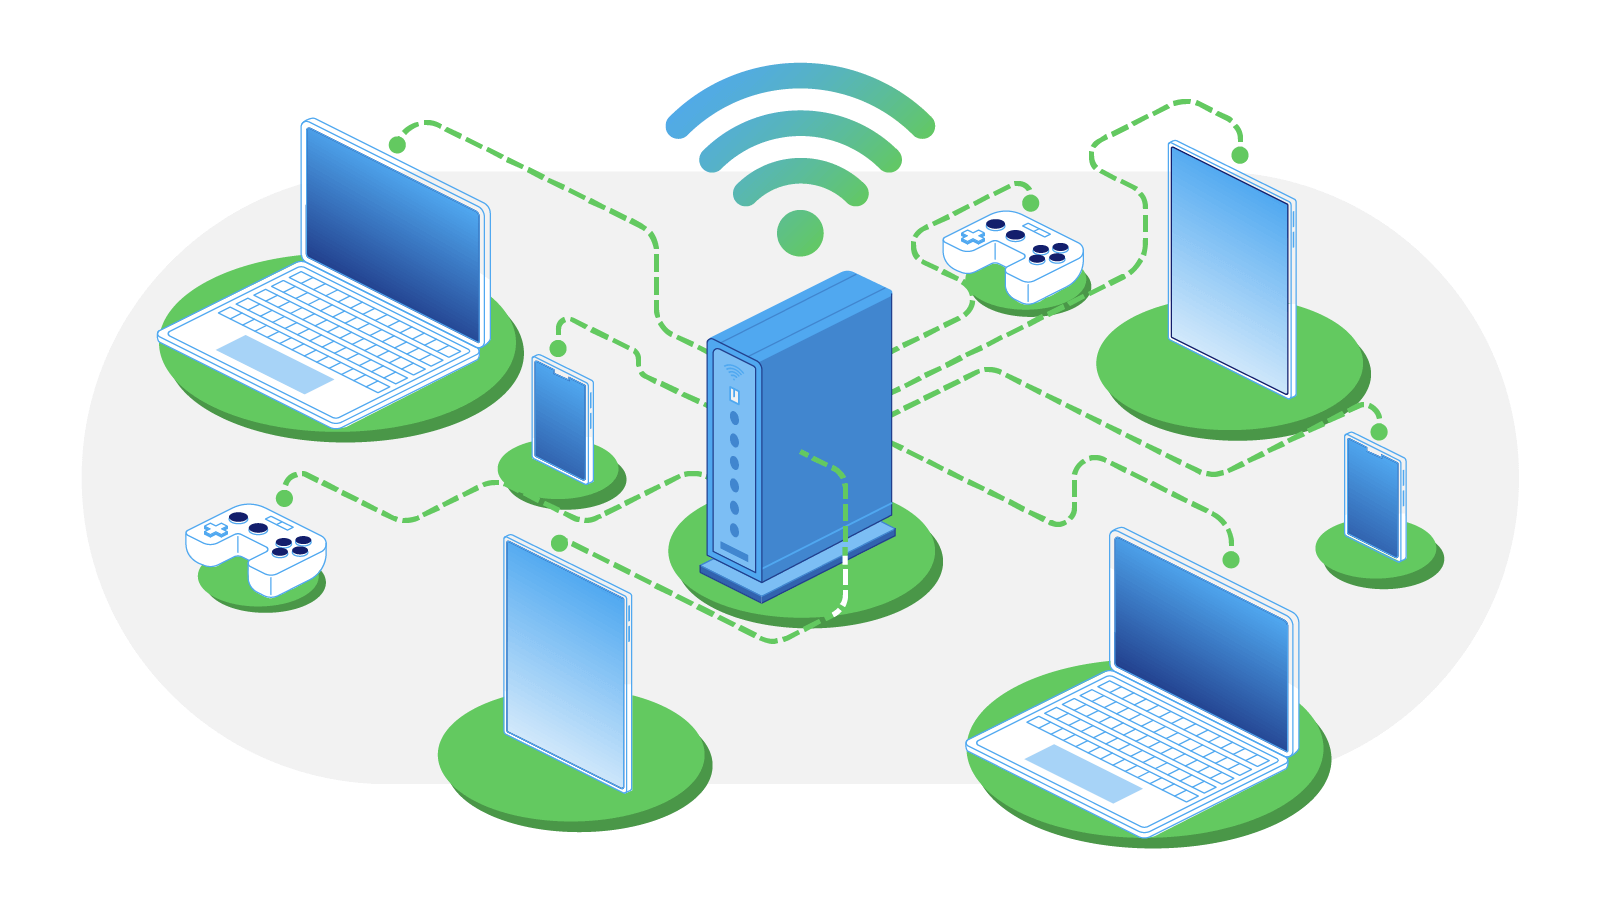 Too Many Devices on Wifi